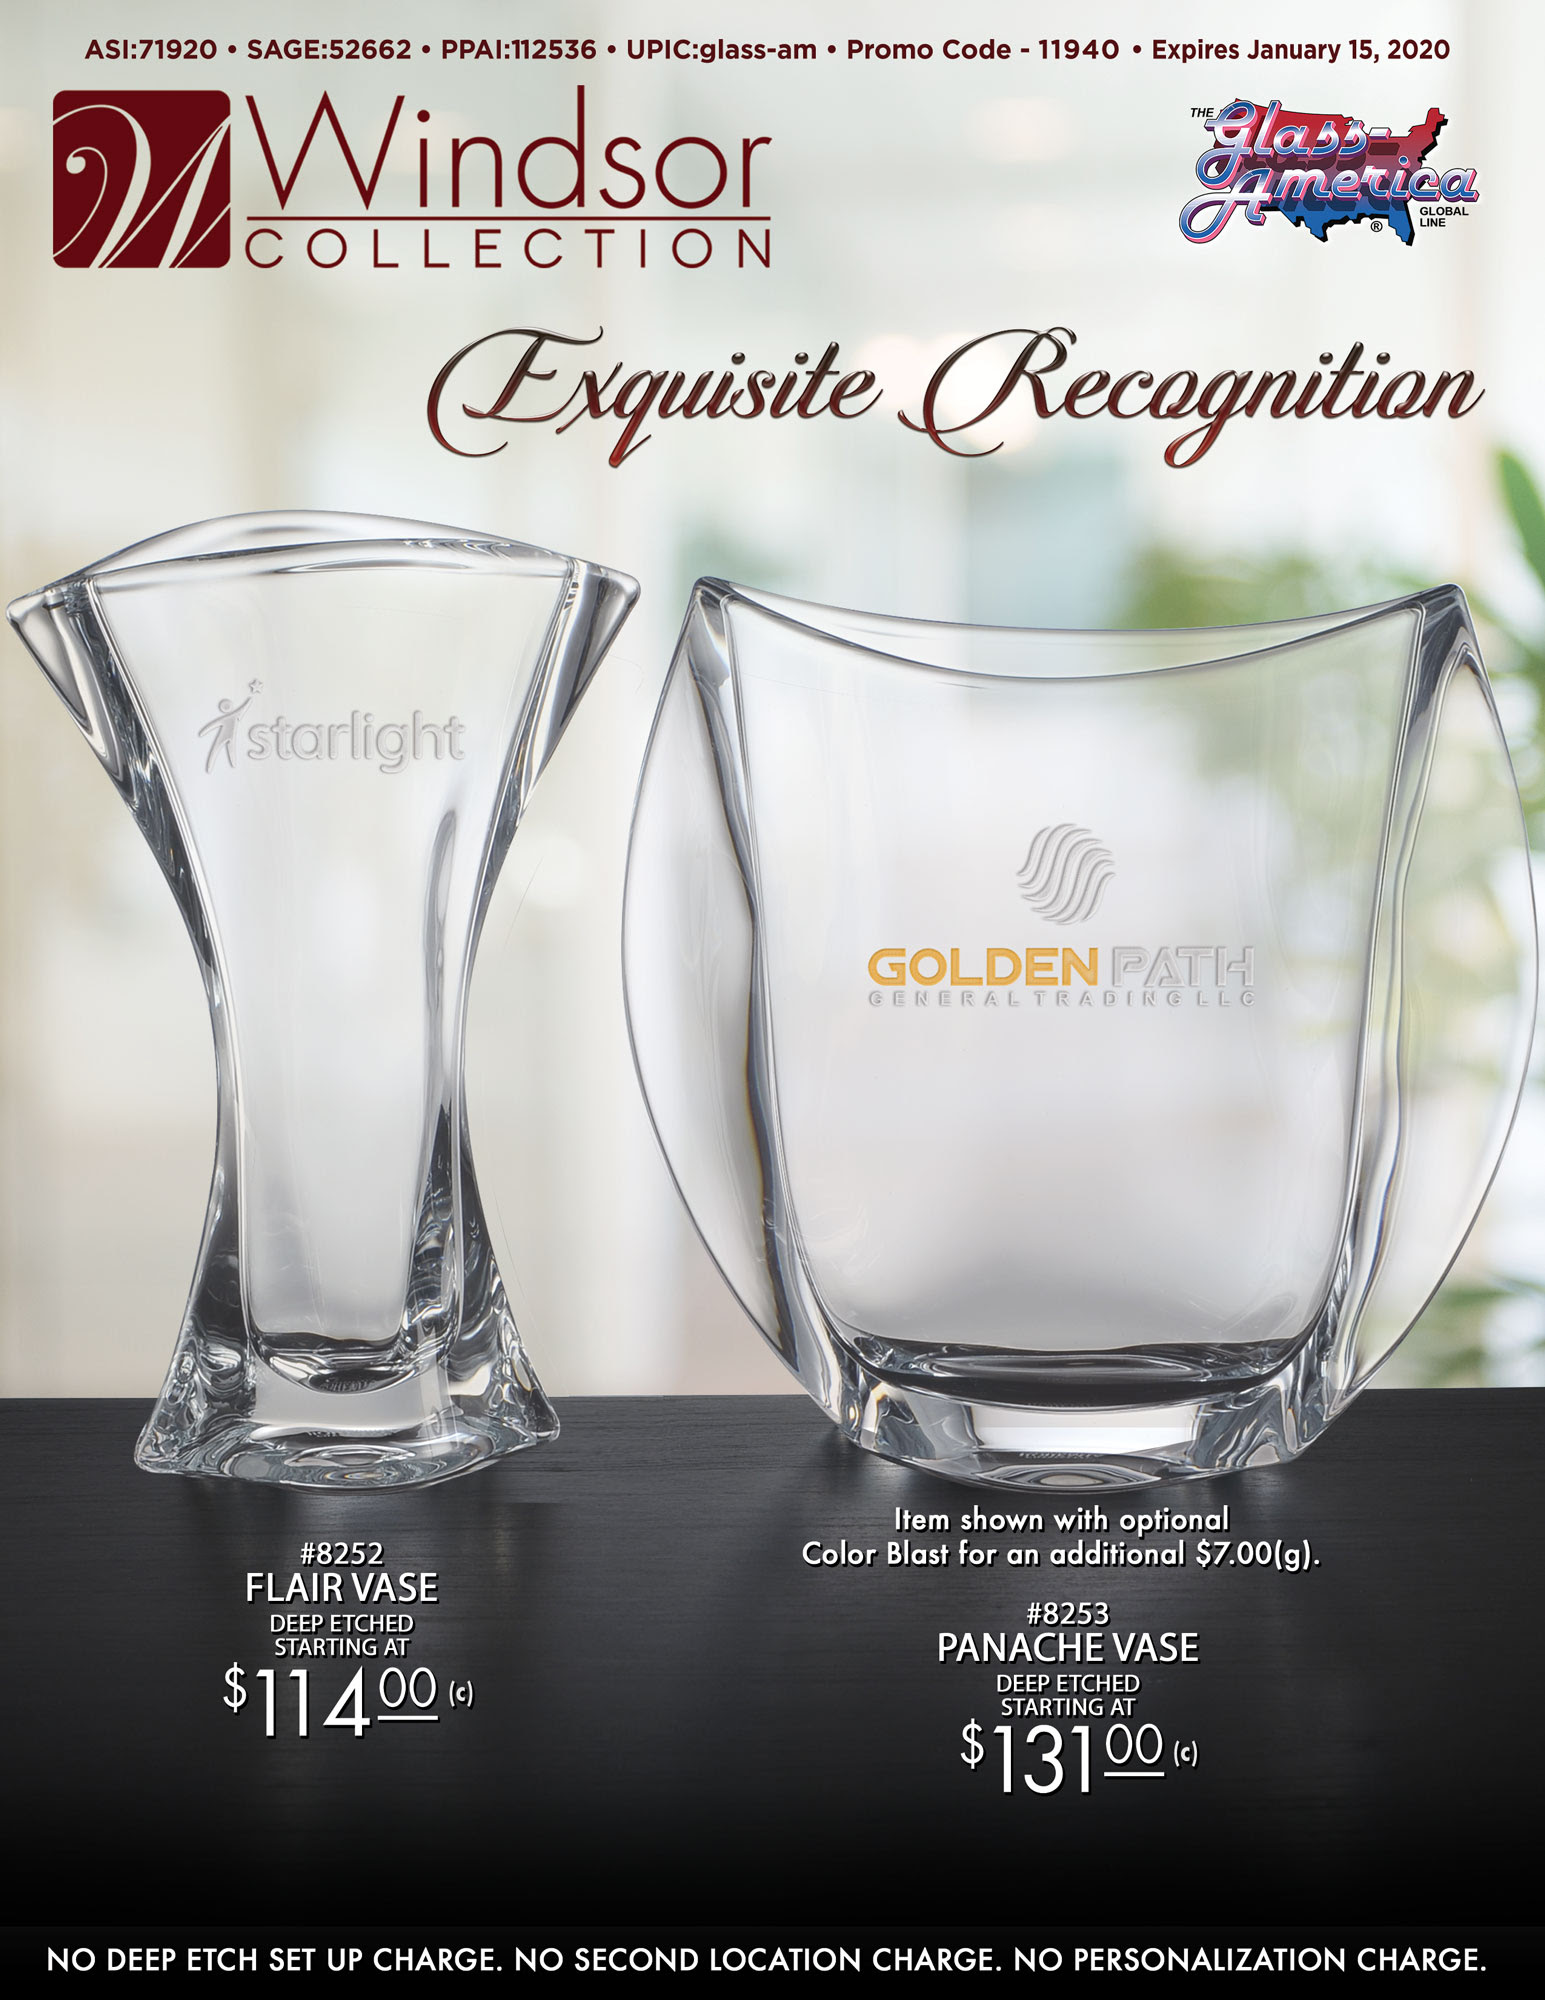 Award Vases by The Windsor Collection